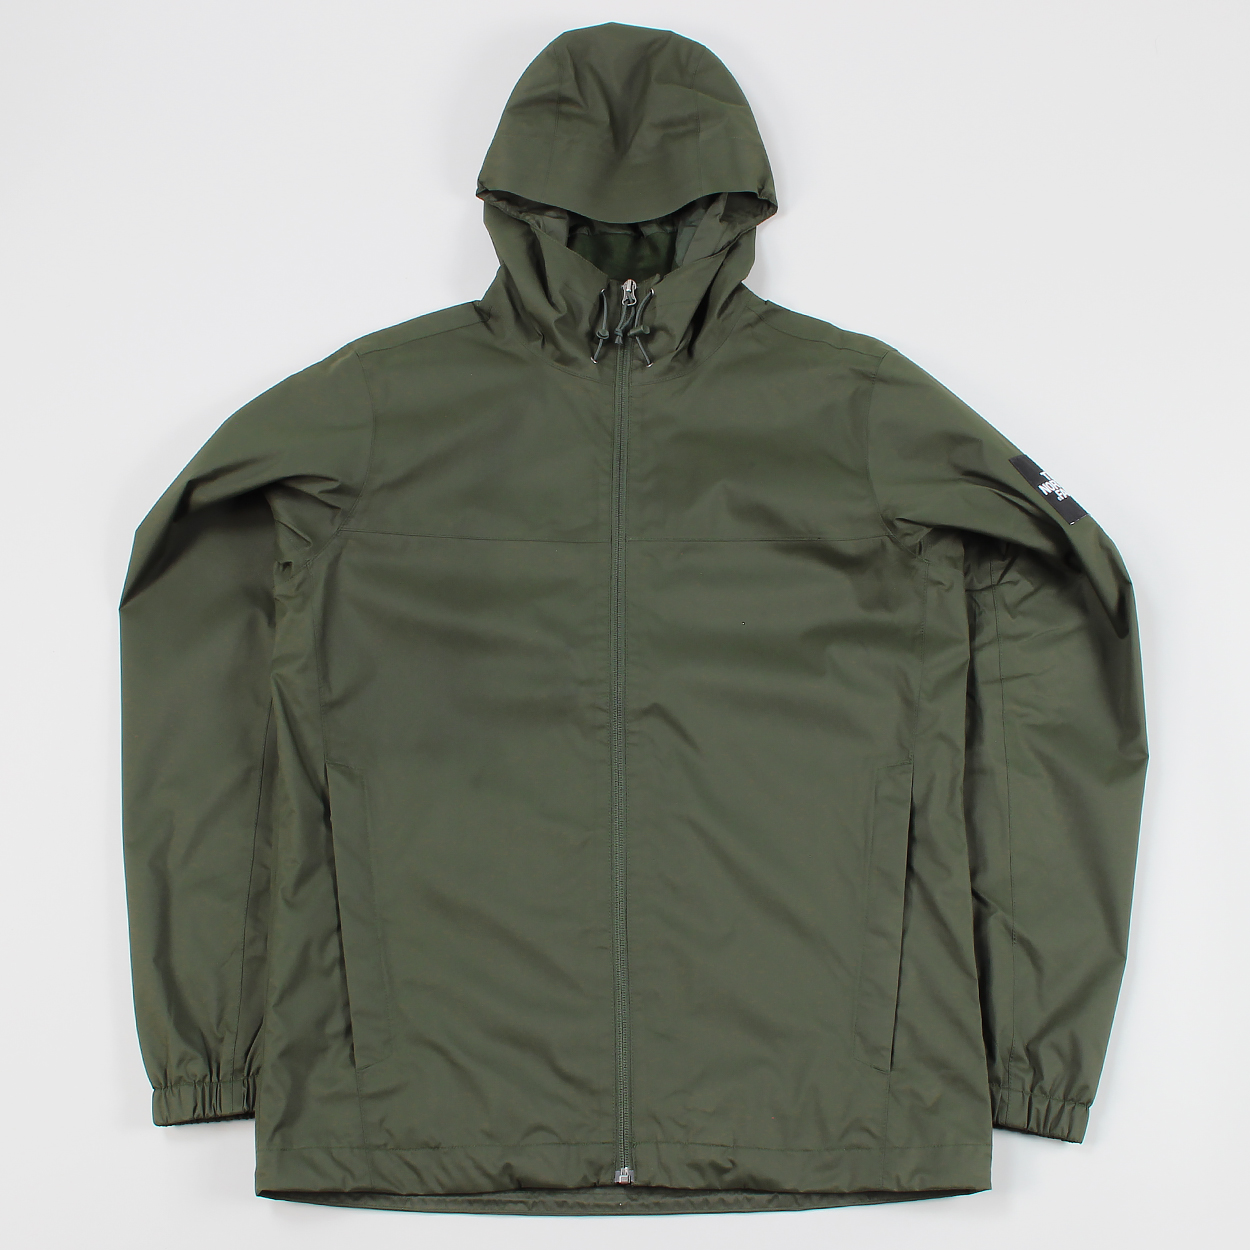 16239af29ad The North Face Mens Black Label Mountain Quest Jacket Rosin Green £91.00